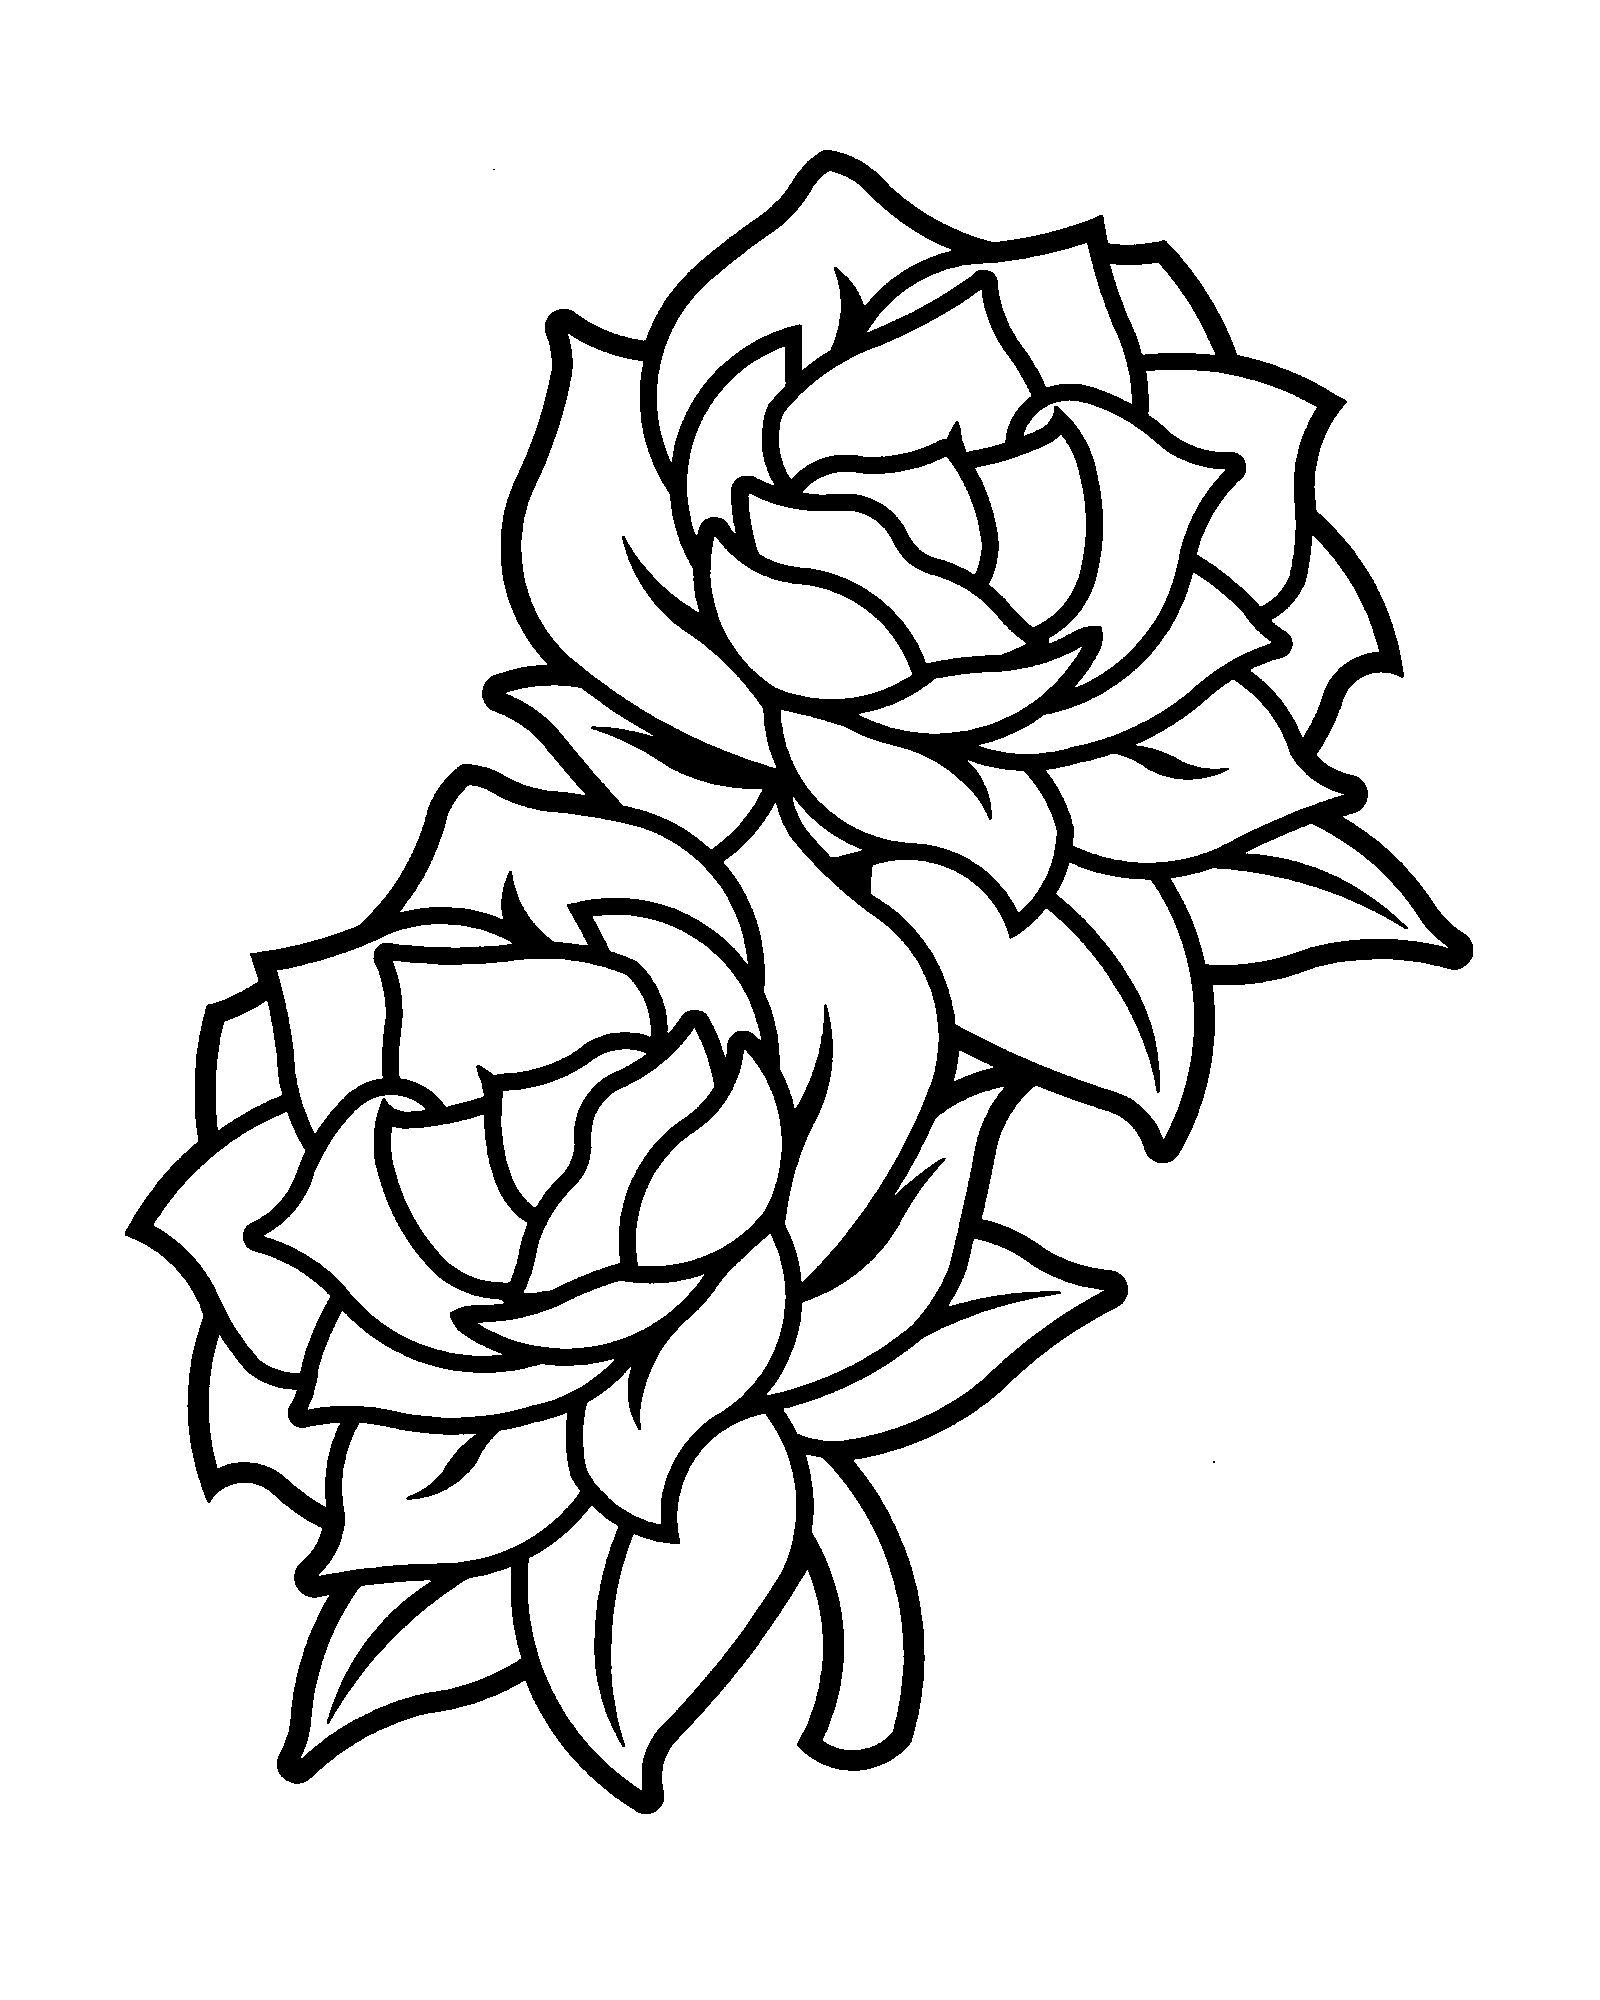 Gardenia Flower Drawing at PaintingValley.com | Explore